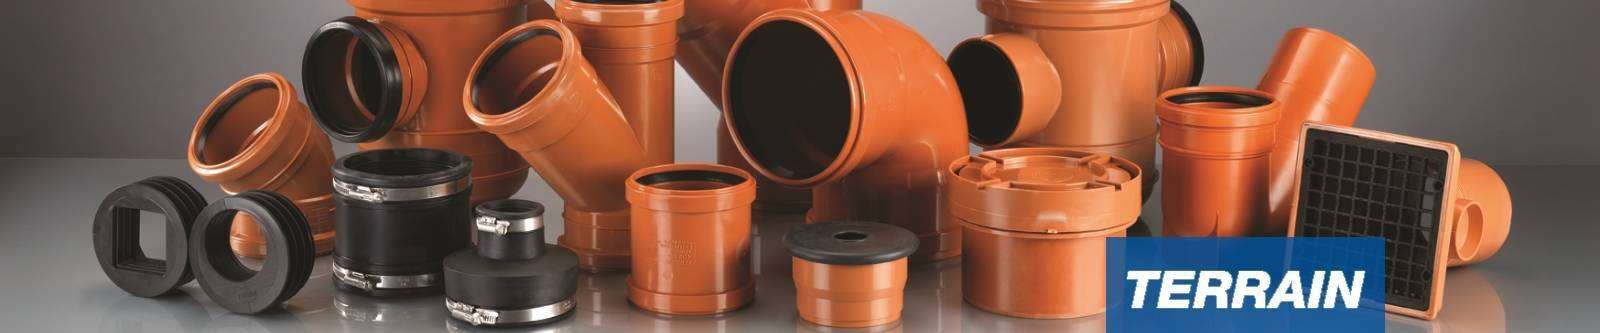 Terrain underground PVC drainage system for commercial buildings